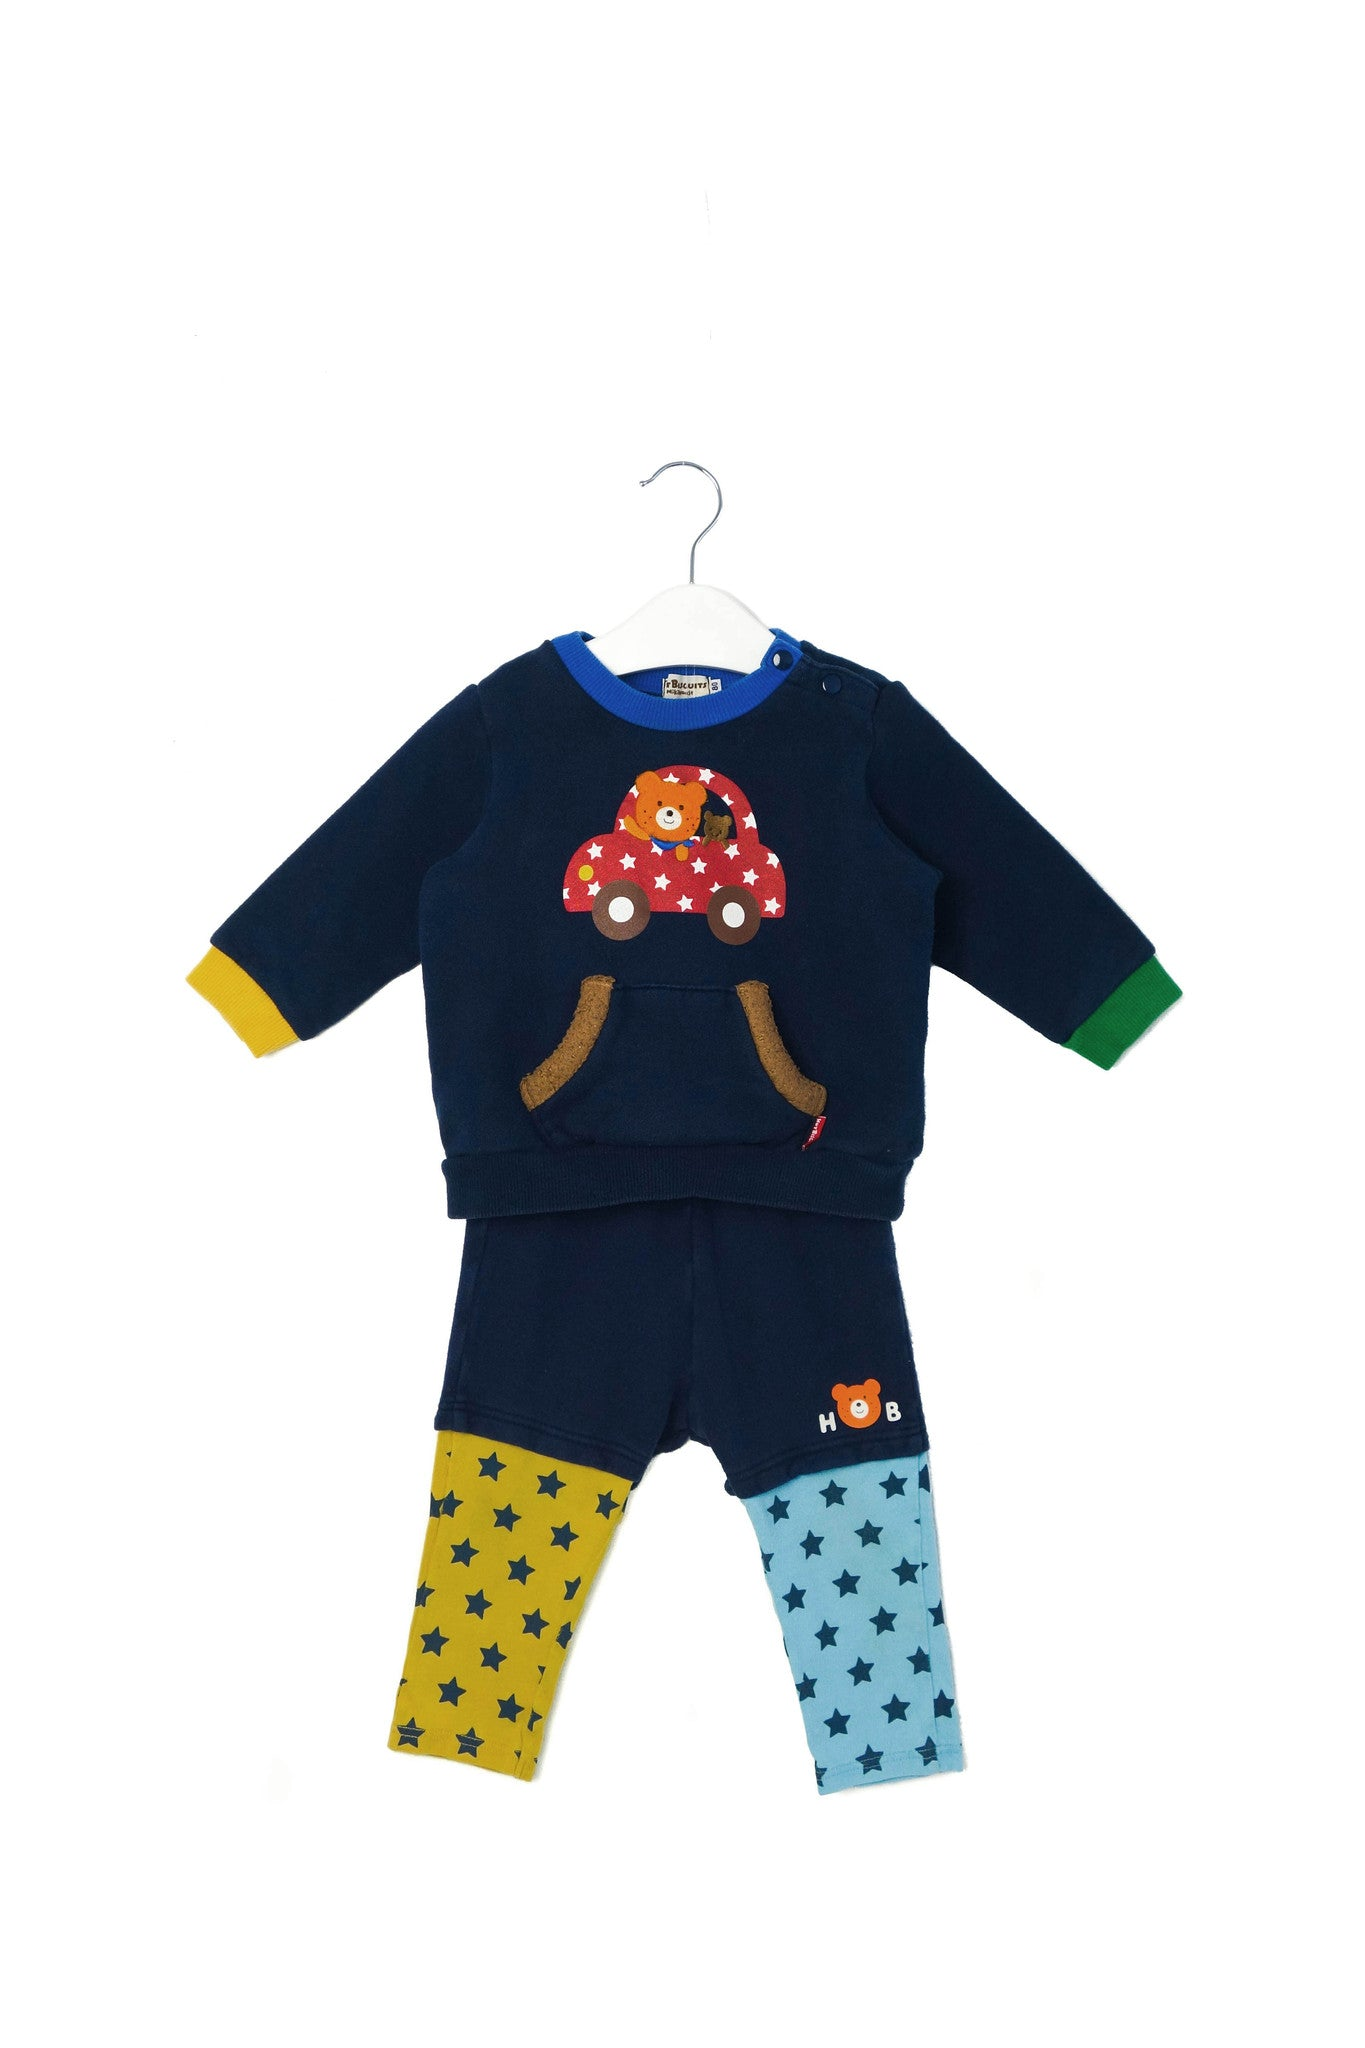 10003099 Miki House Baby~Sweatshirt and Pants 12-18M (80cm) at Retykle